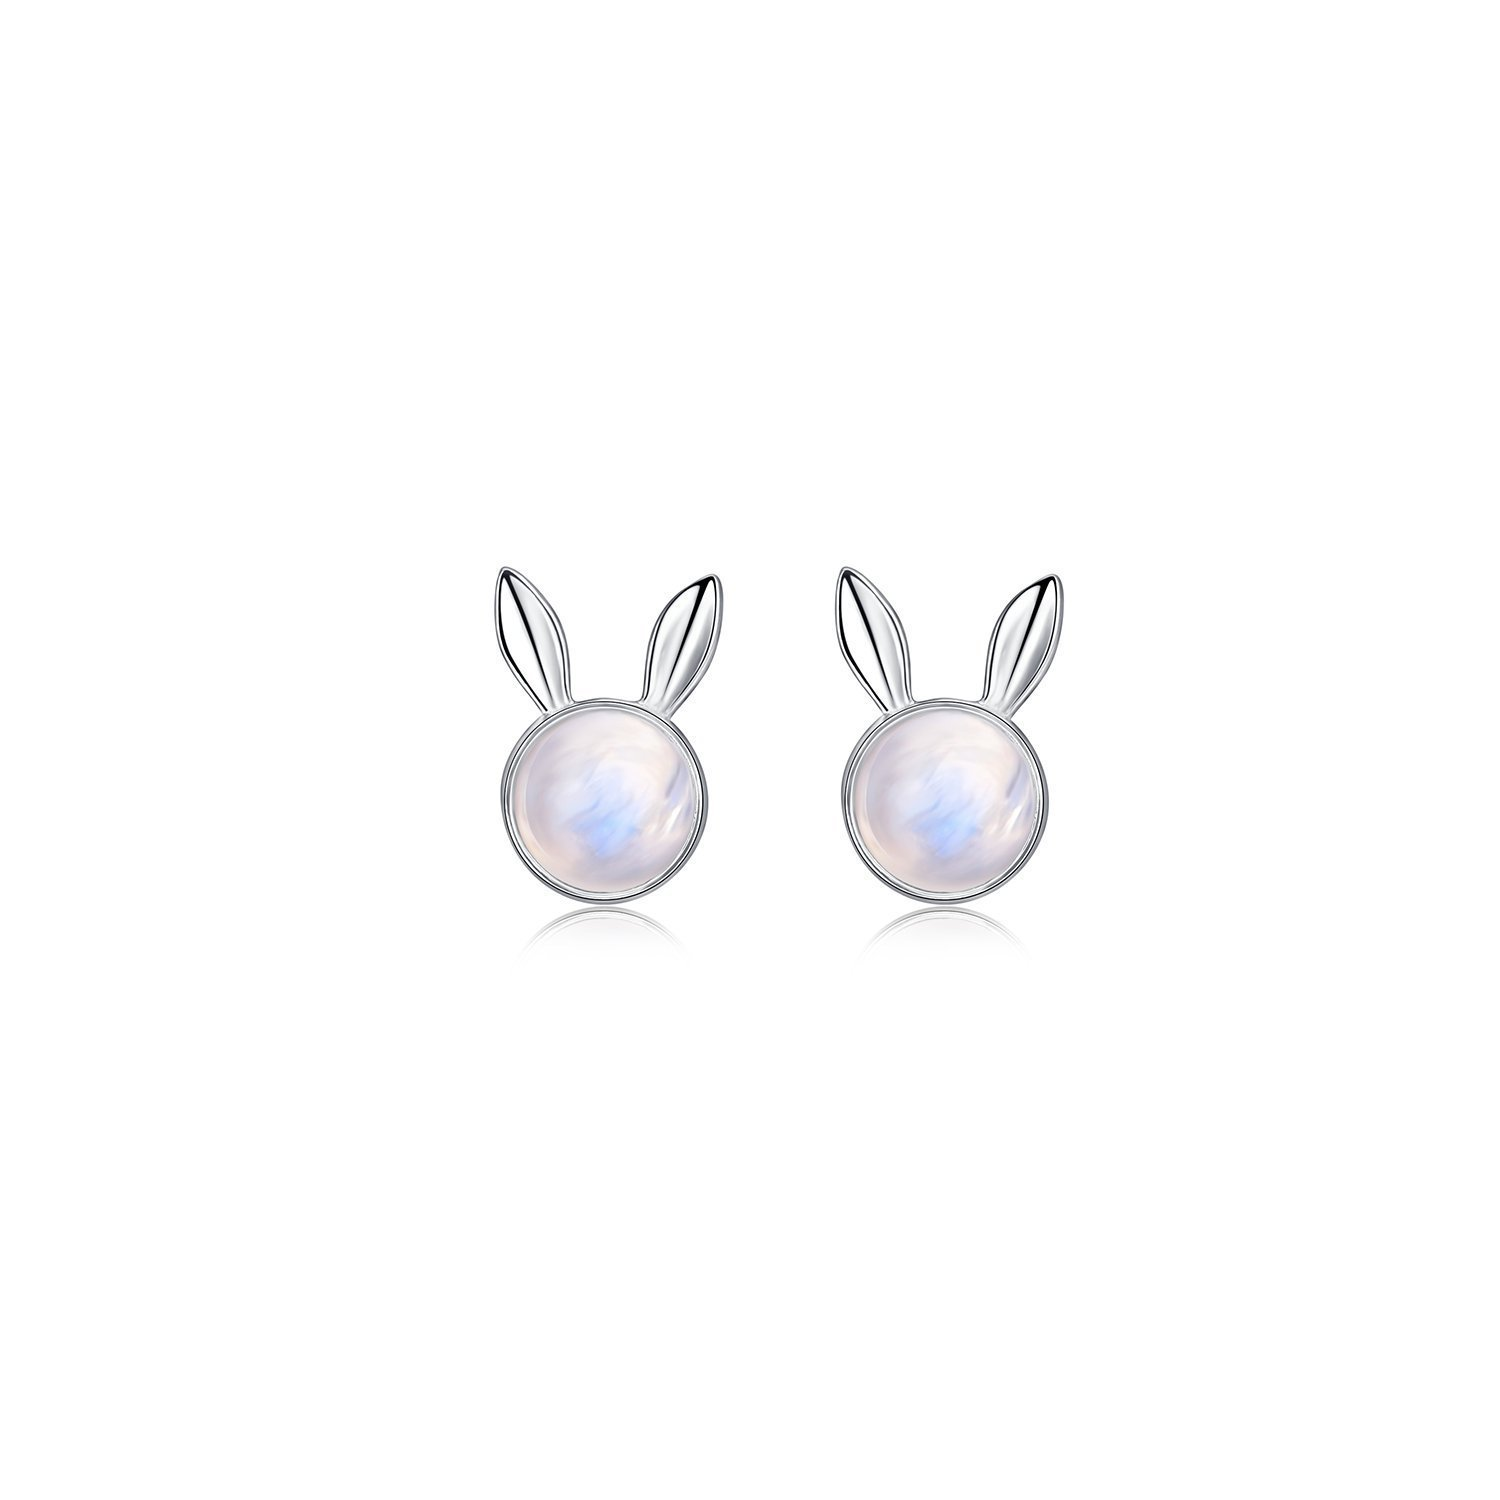 Dream Catcher Earrings Sterling Low price Moonstone Rabbit Max 68% OFF Silver Bunny